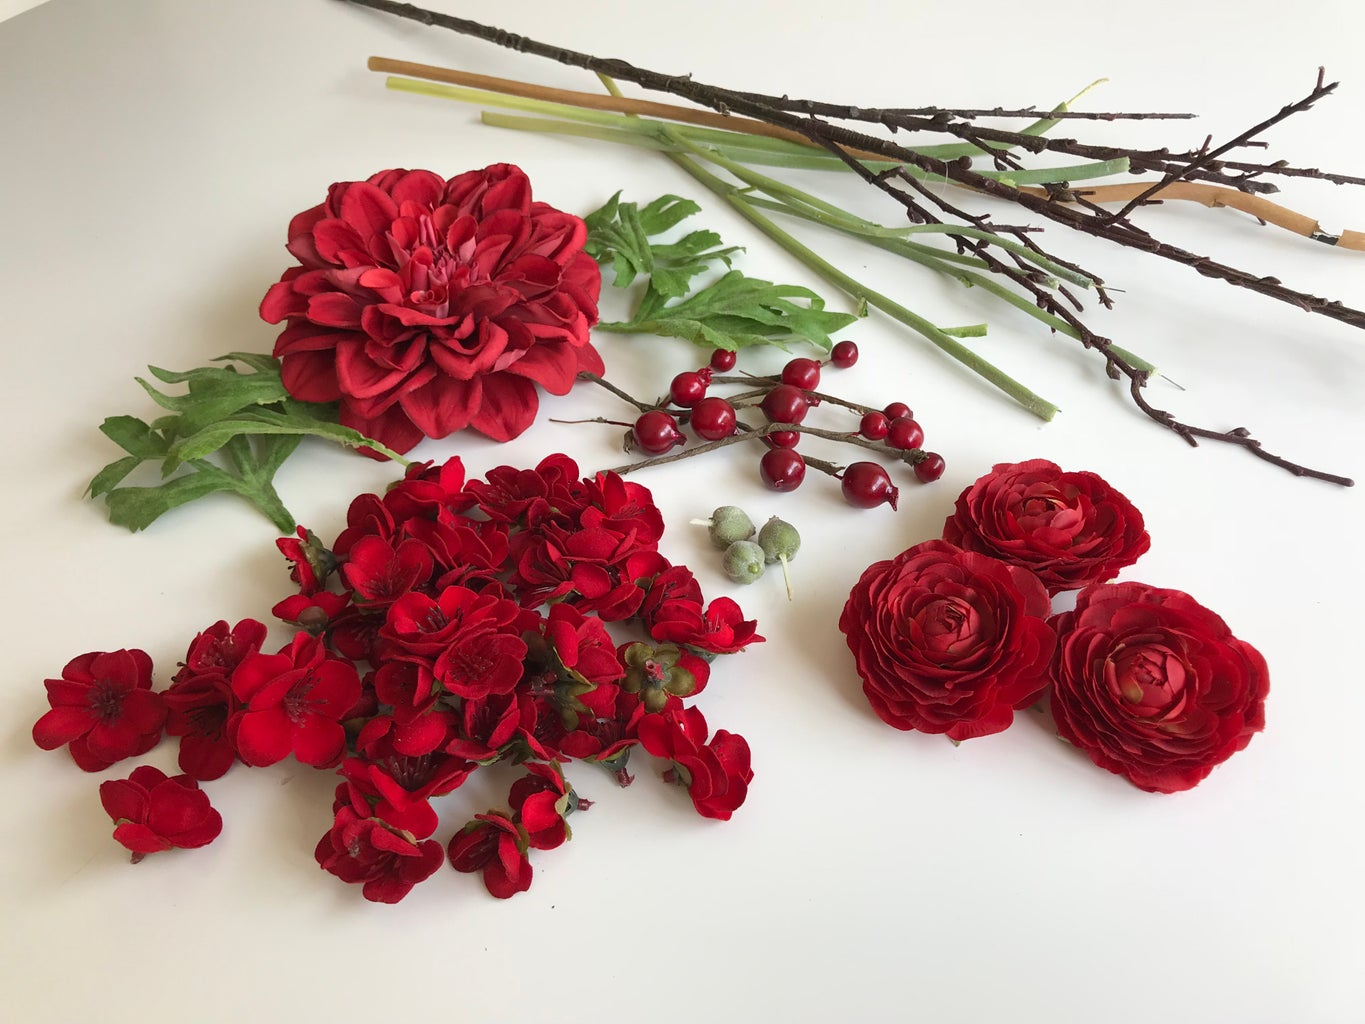 CUT FLOWERS FROM STEAM